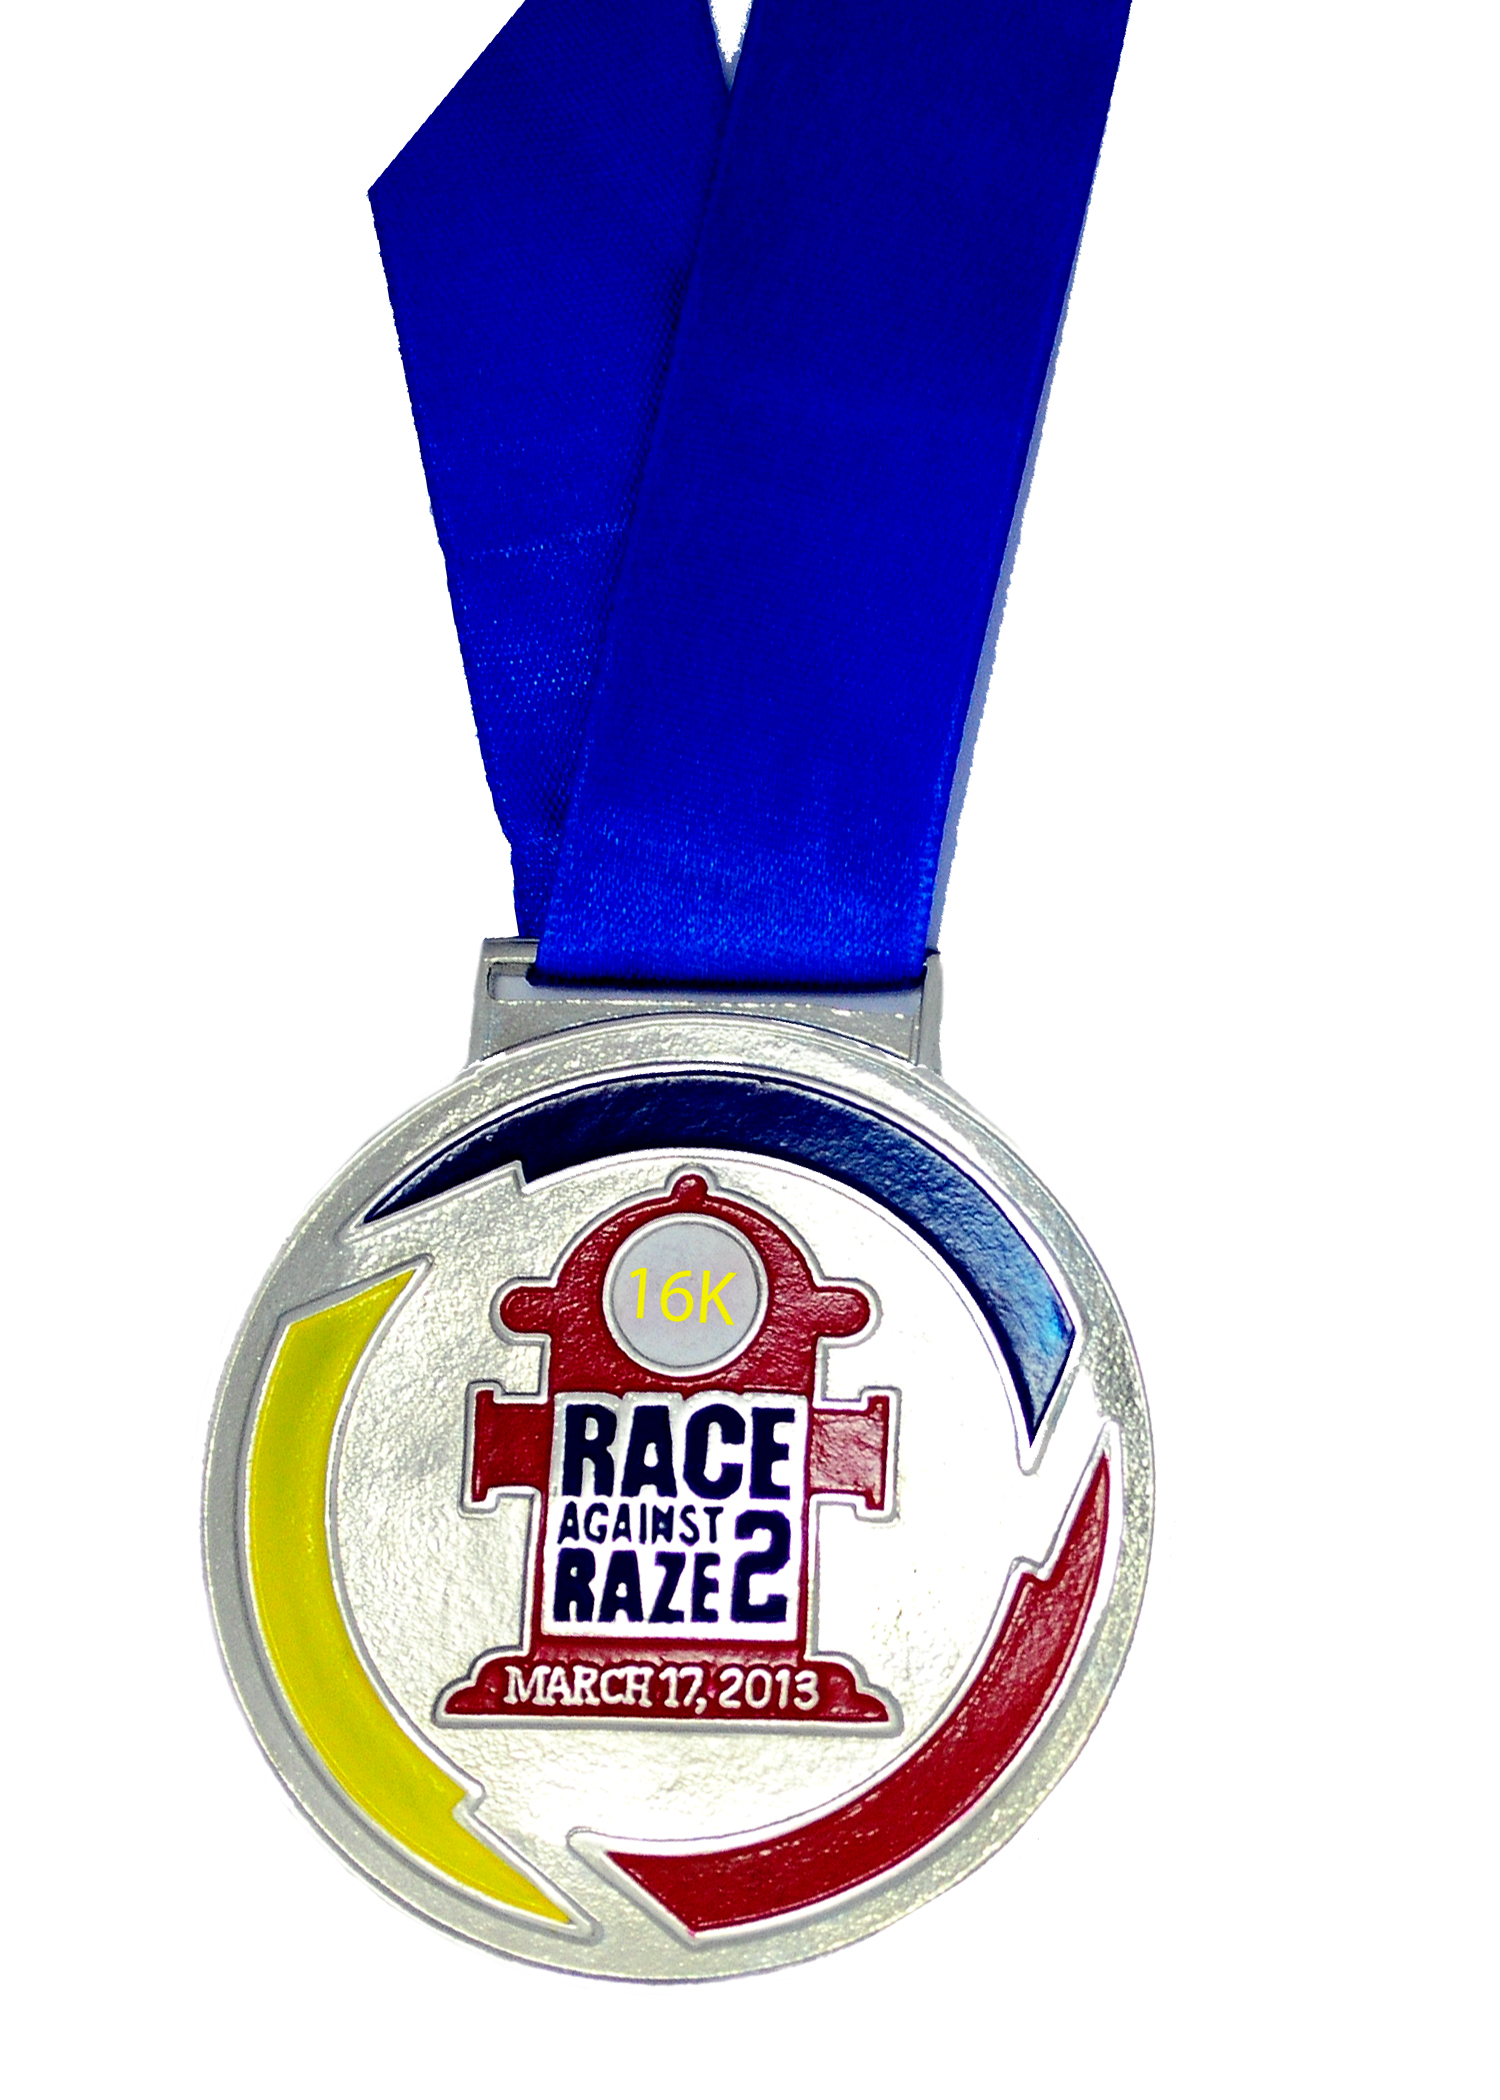 race-against-raze-2-2013-medal-design